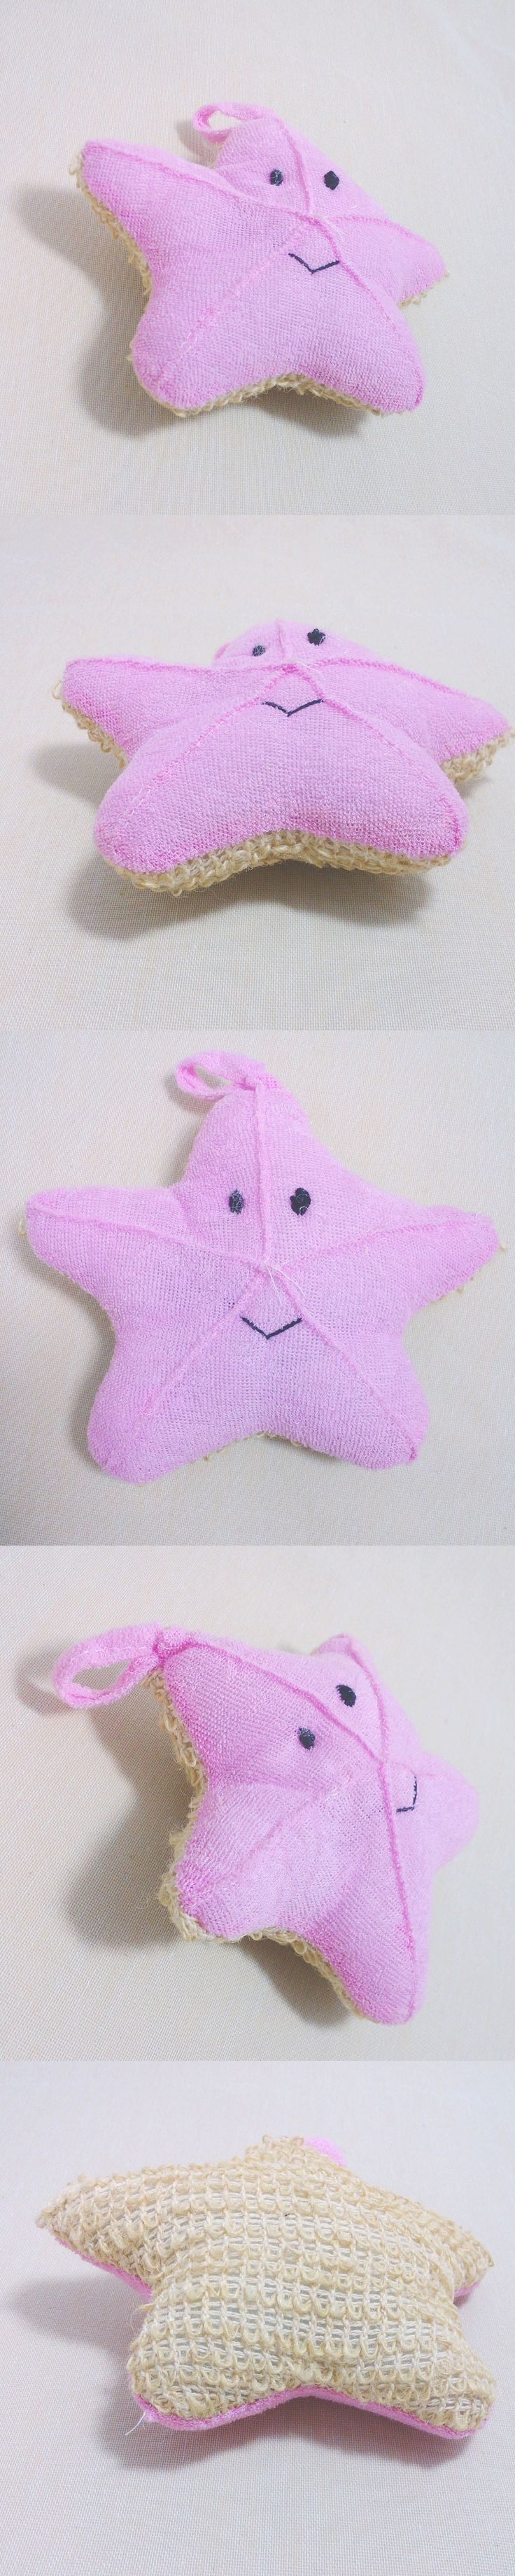 Cute Baby Bath Sponge Cartoon Starfish Super Soft Cotton Brush Rubbing Towel Ball New Bath Gloves   HS11